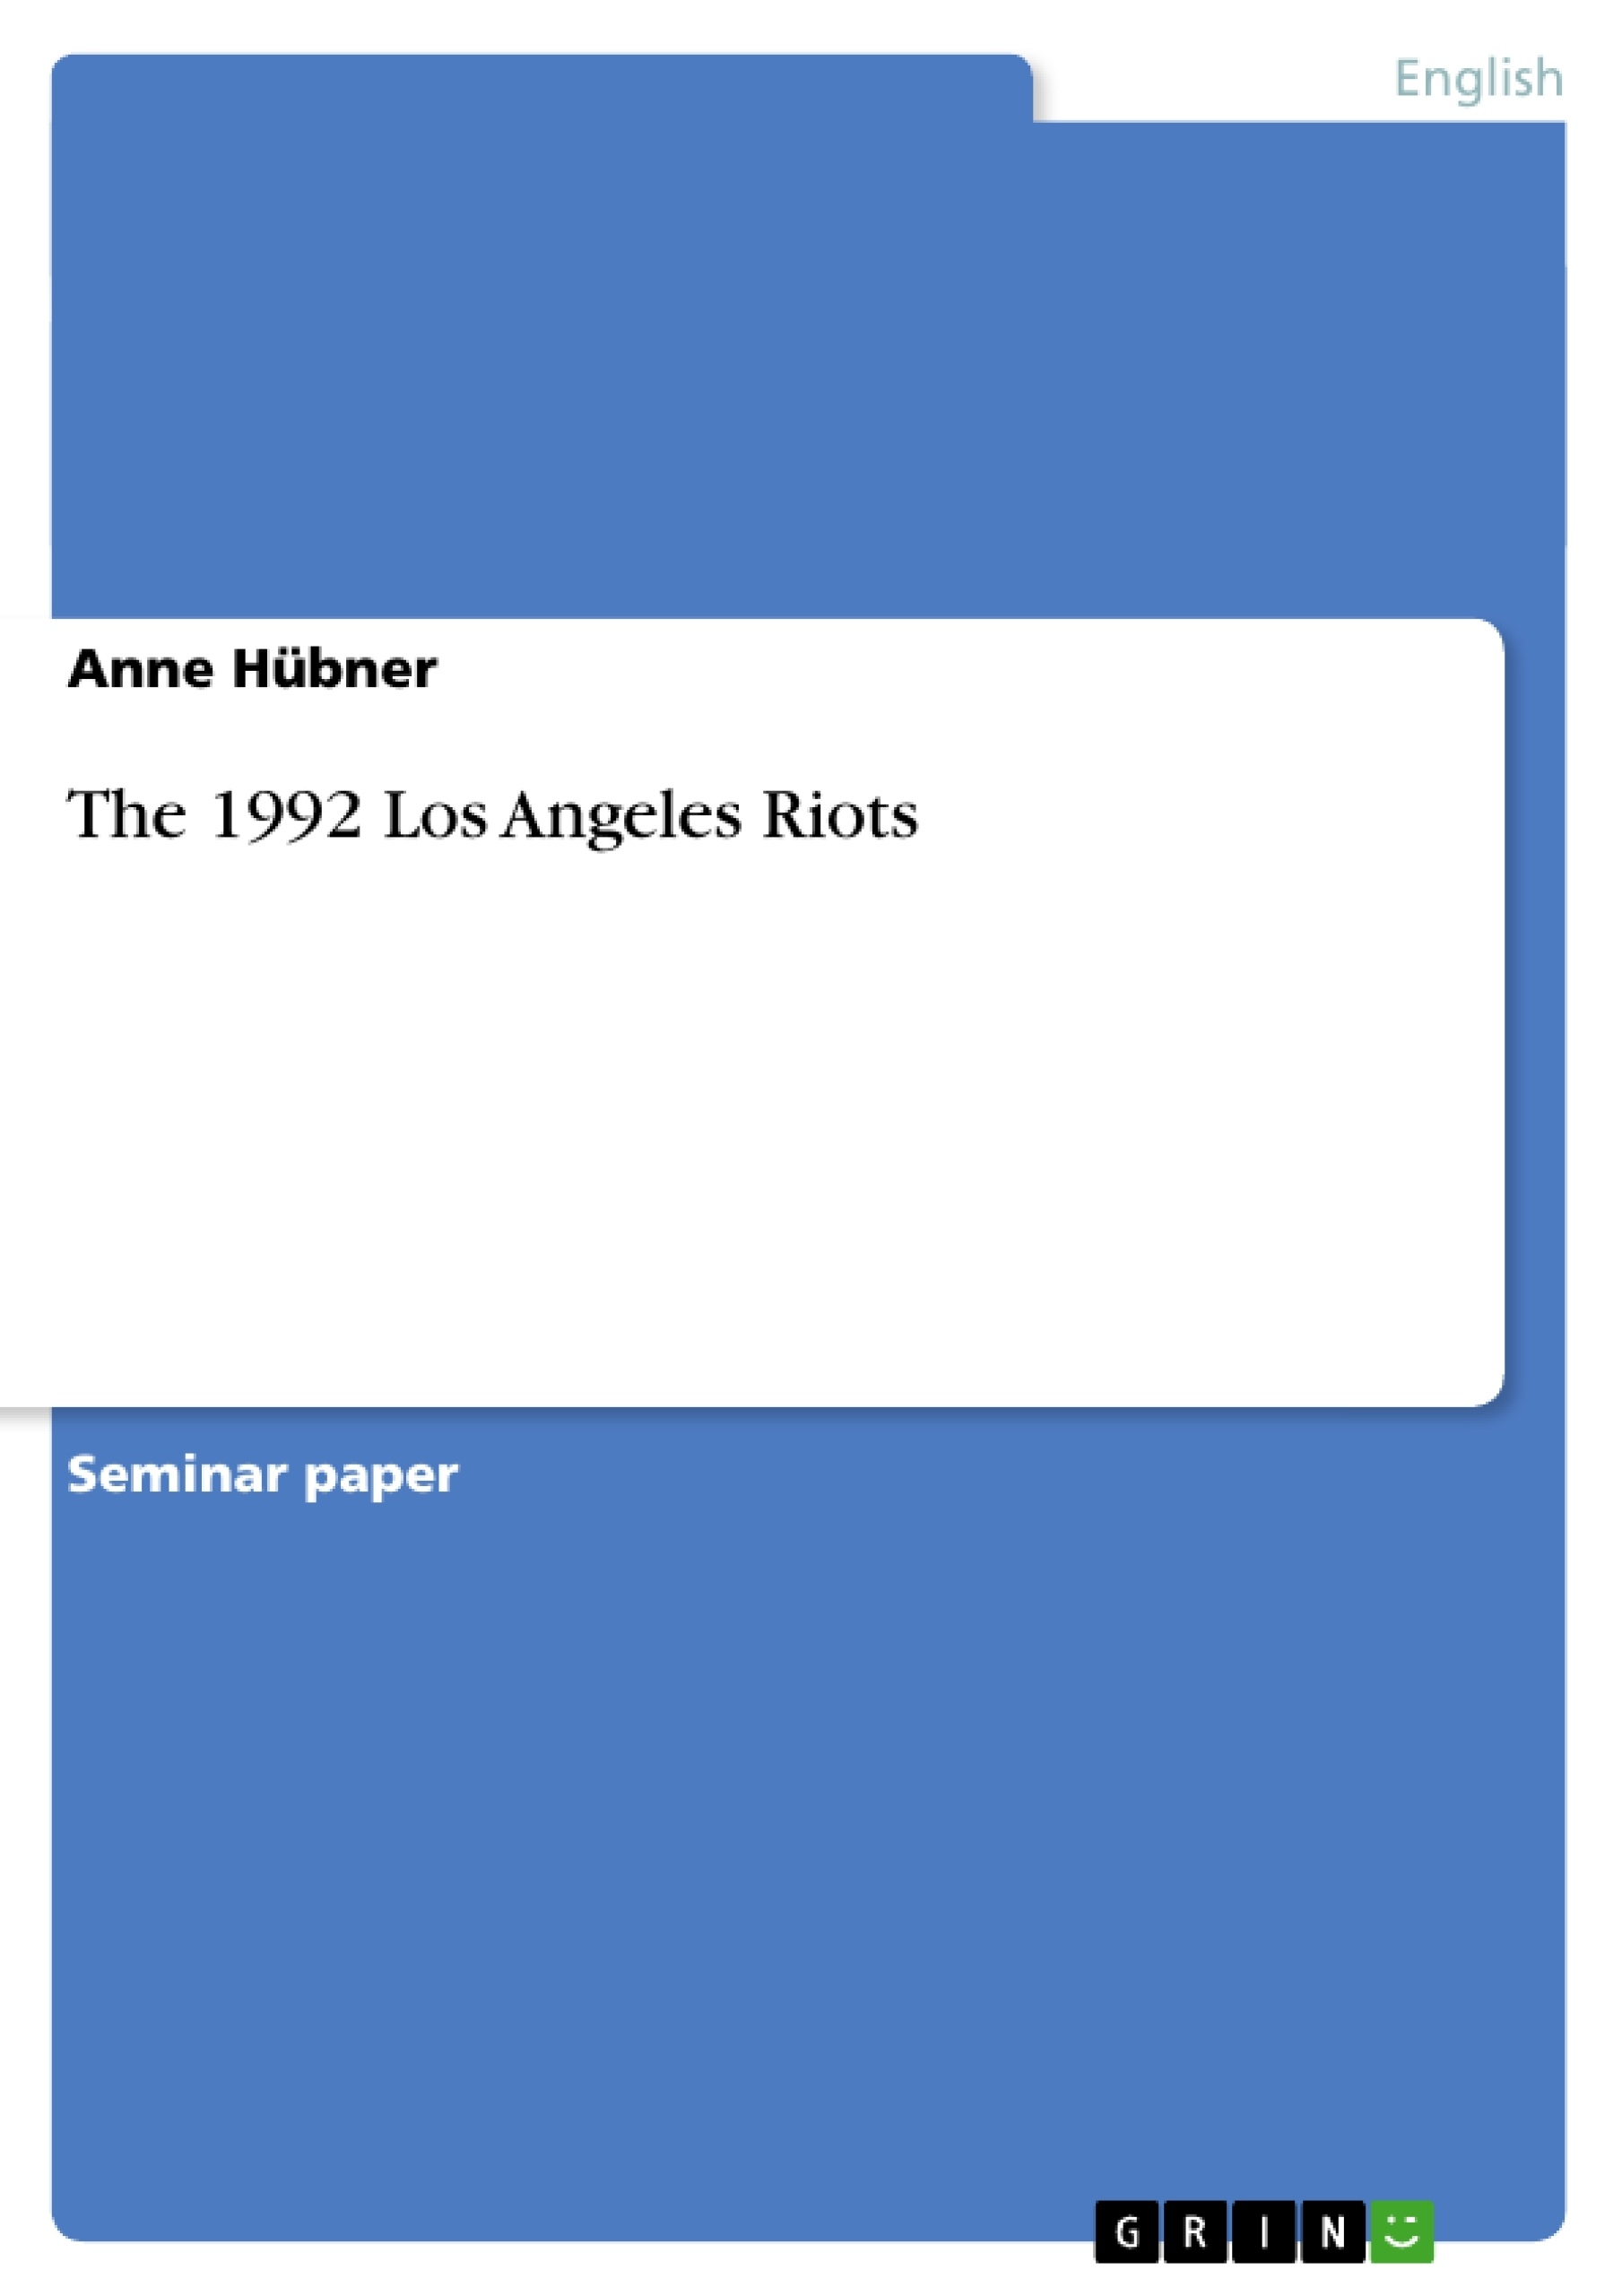 Title: The 1992 Los Angeles Riots